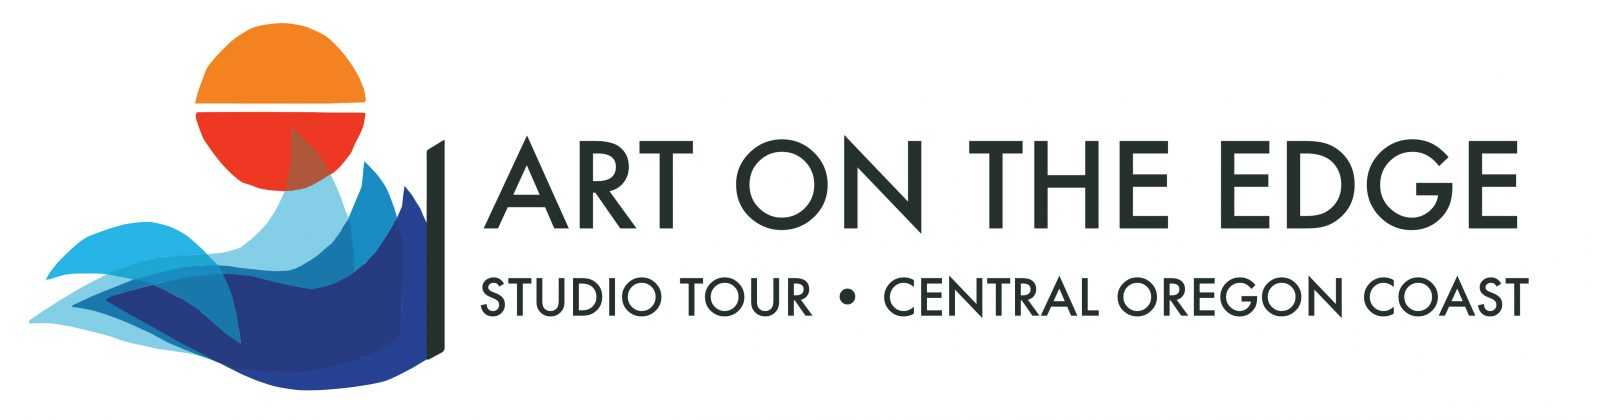 Art on the Edge Logo